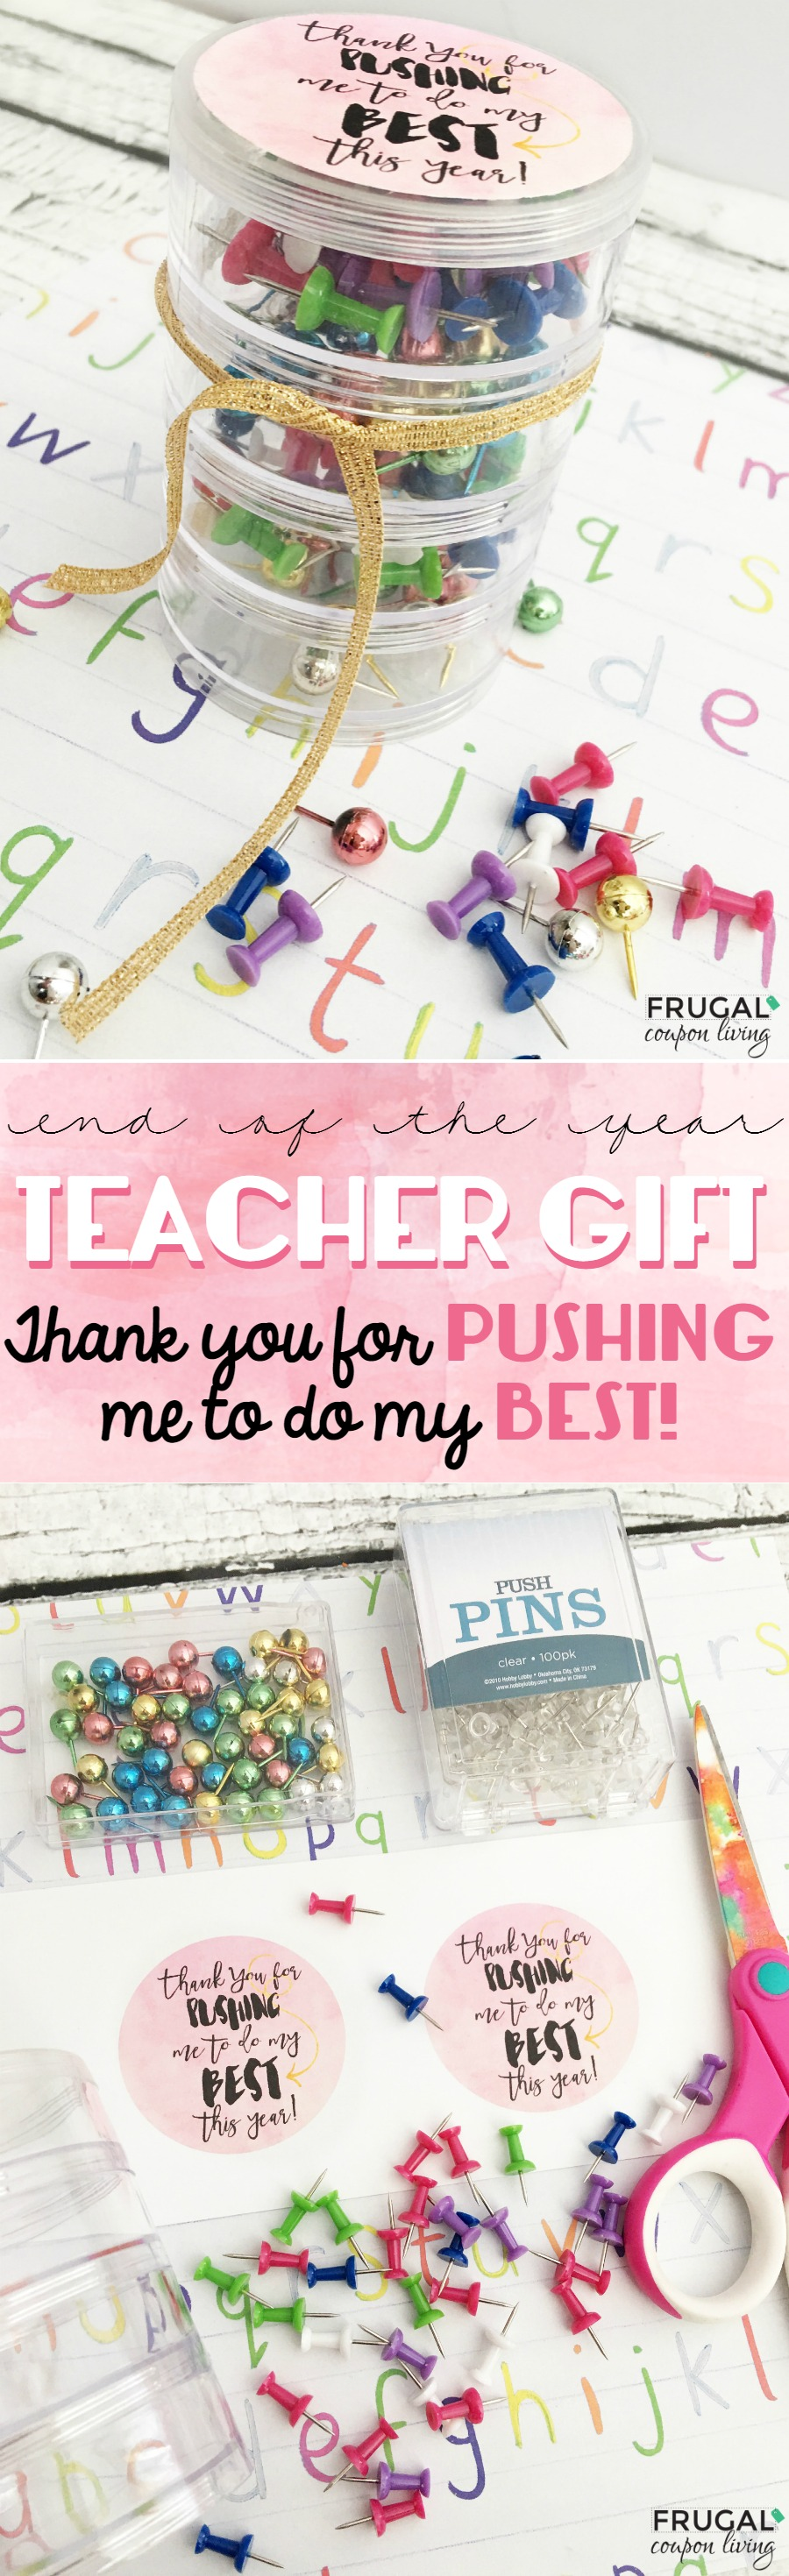 teacher-gift-collage-frugal-coupon-living